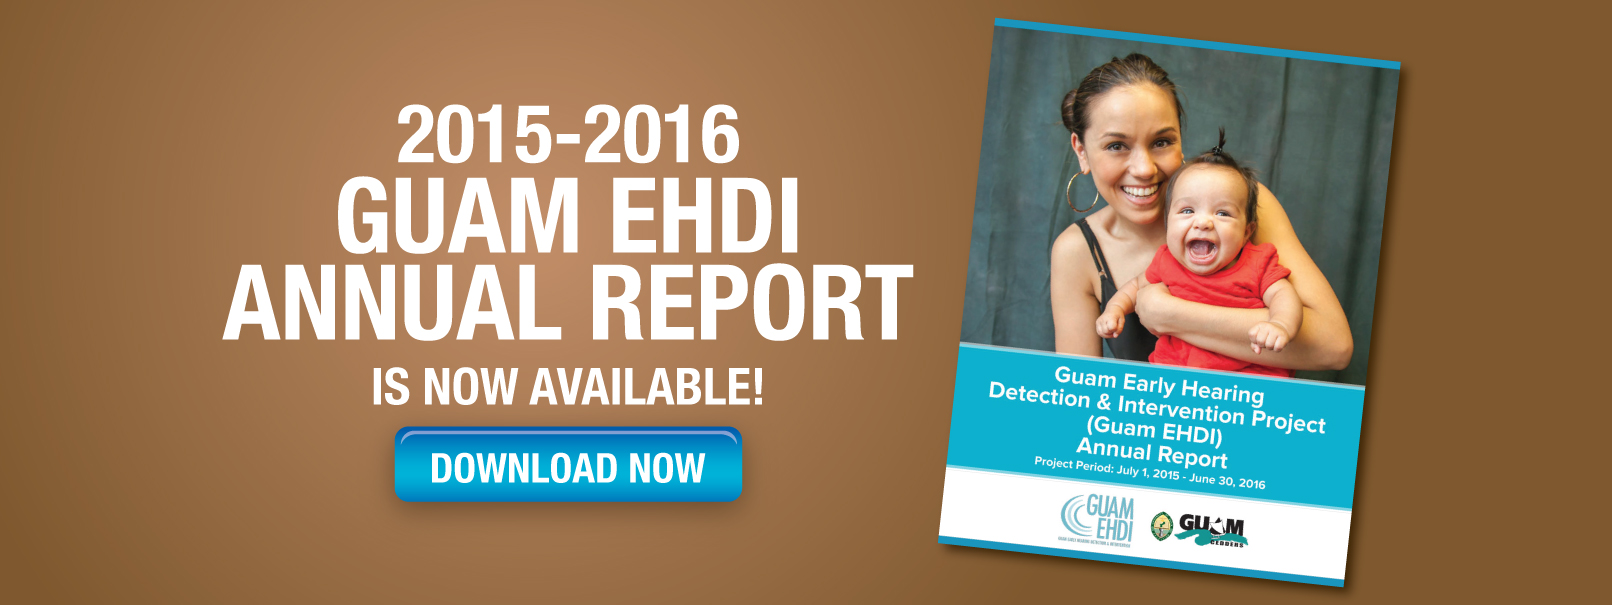 EHDI-ANNUAL-REPORT-BANNER